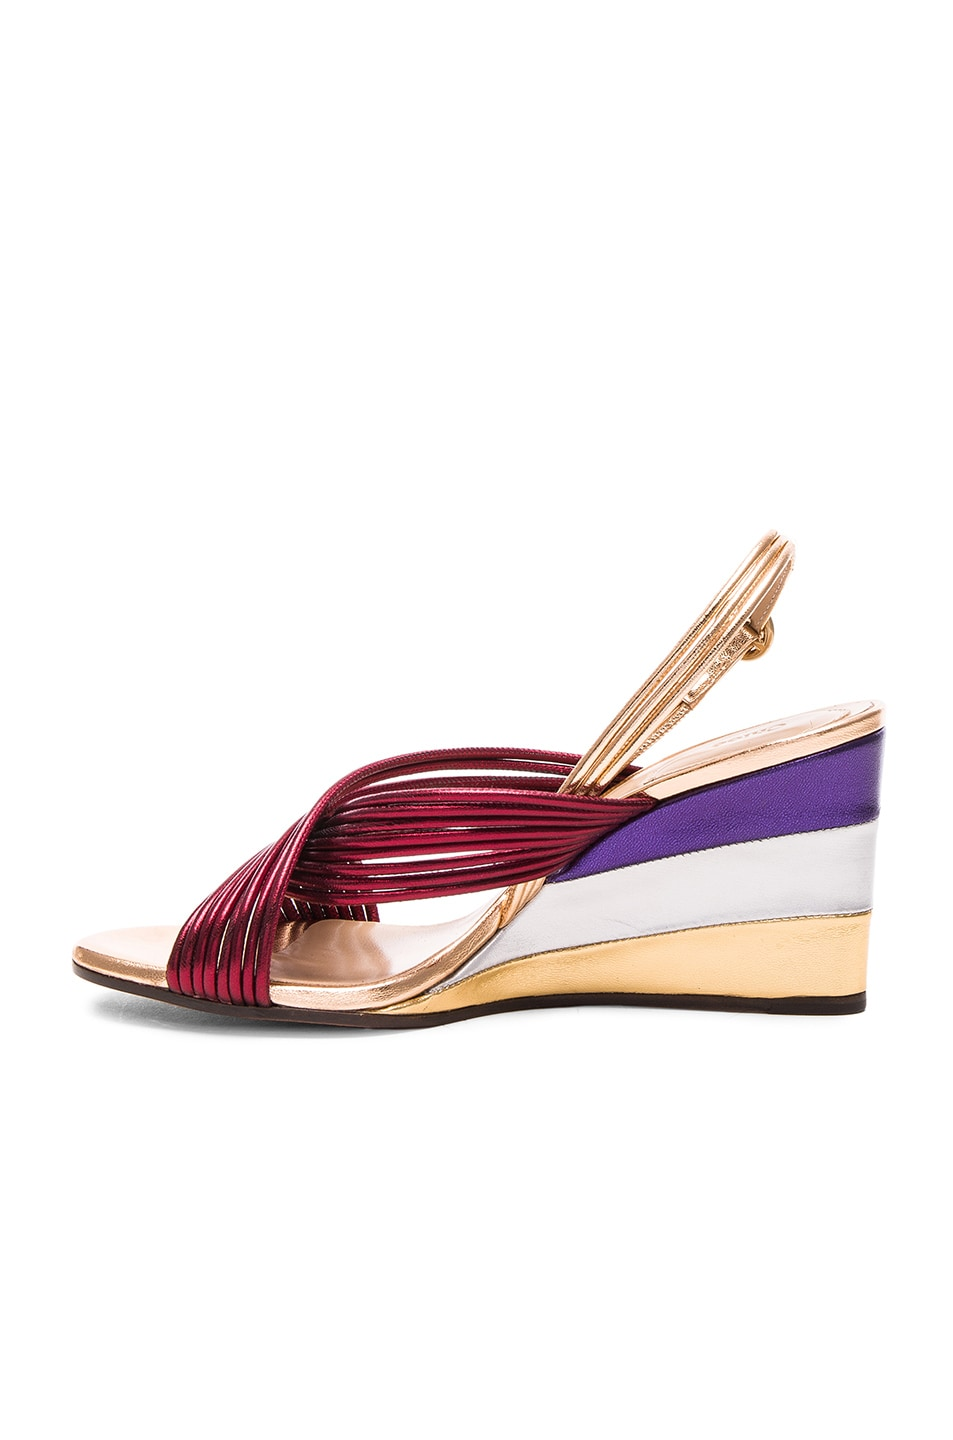 Image 5 of Chloe Leather Rainbow Sandals in Bordeaux Metallic